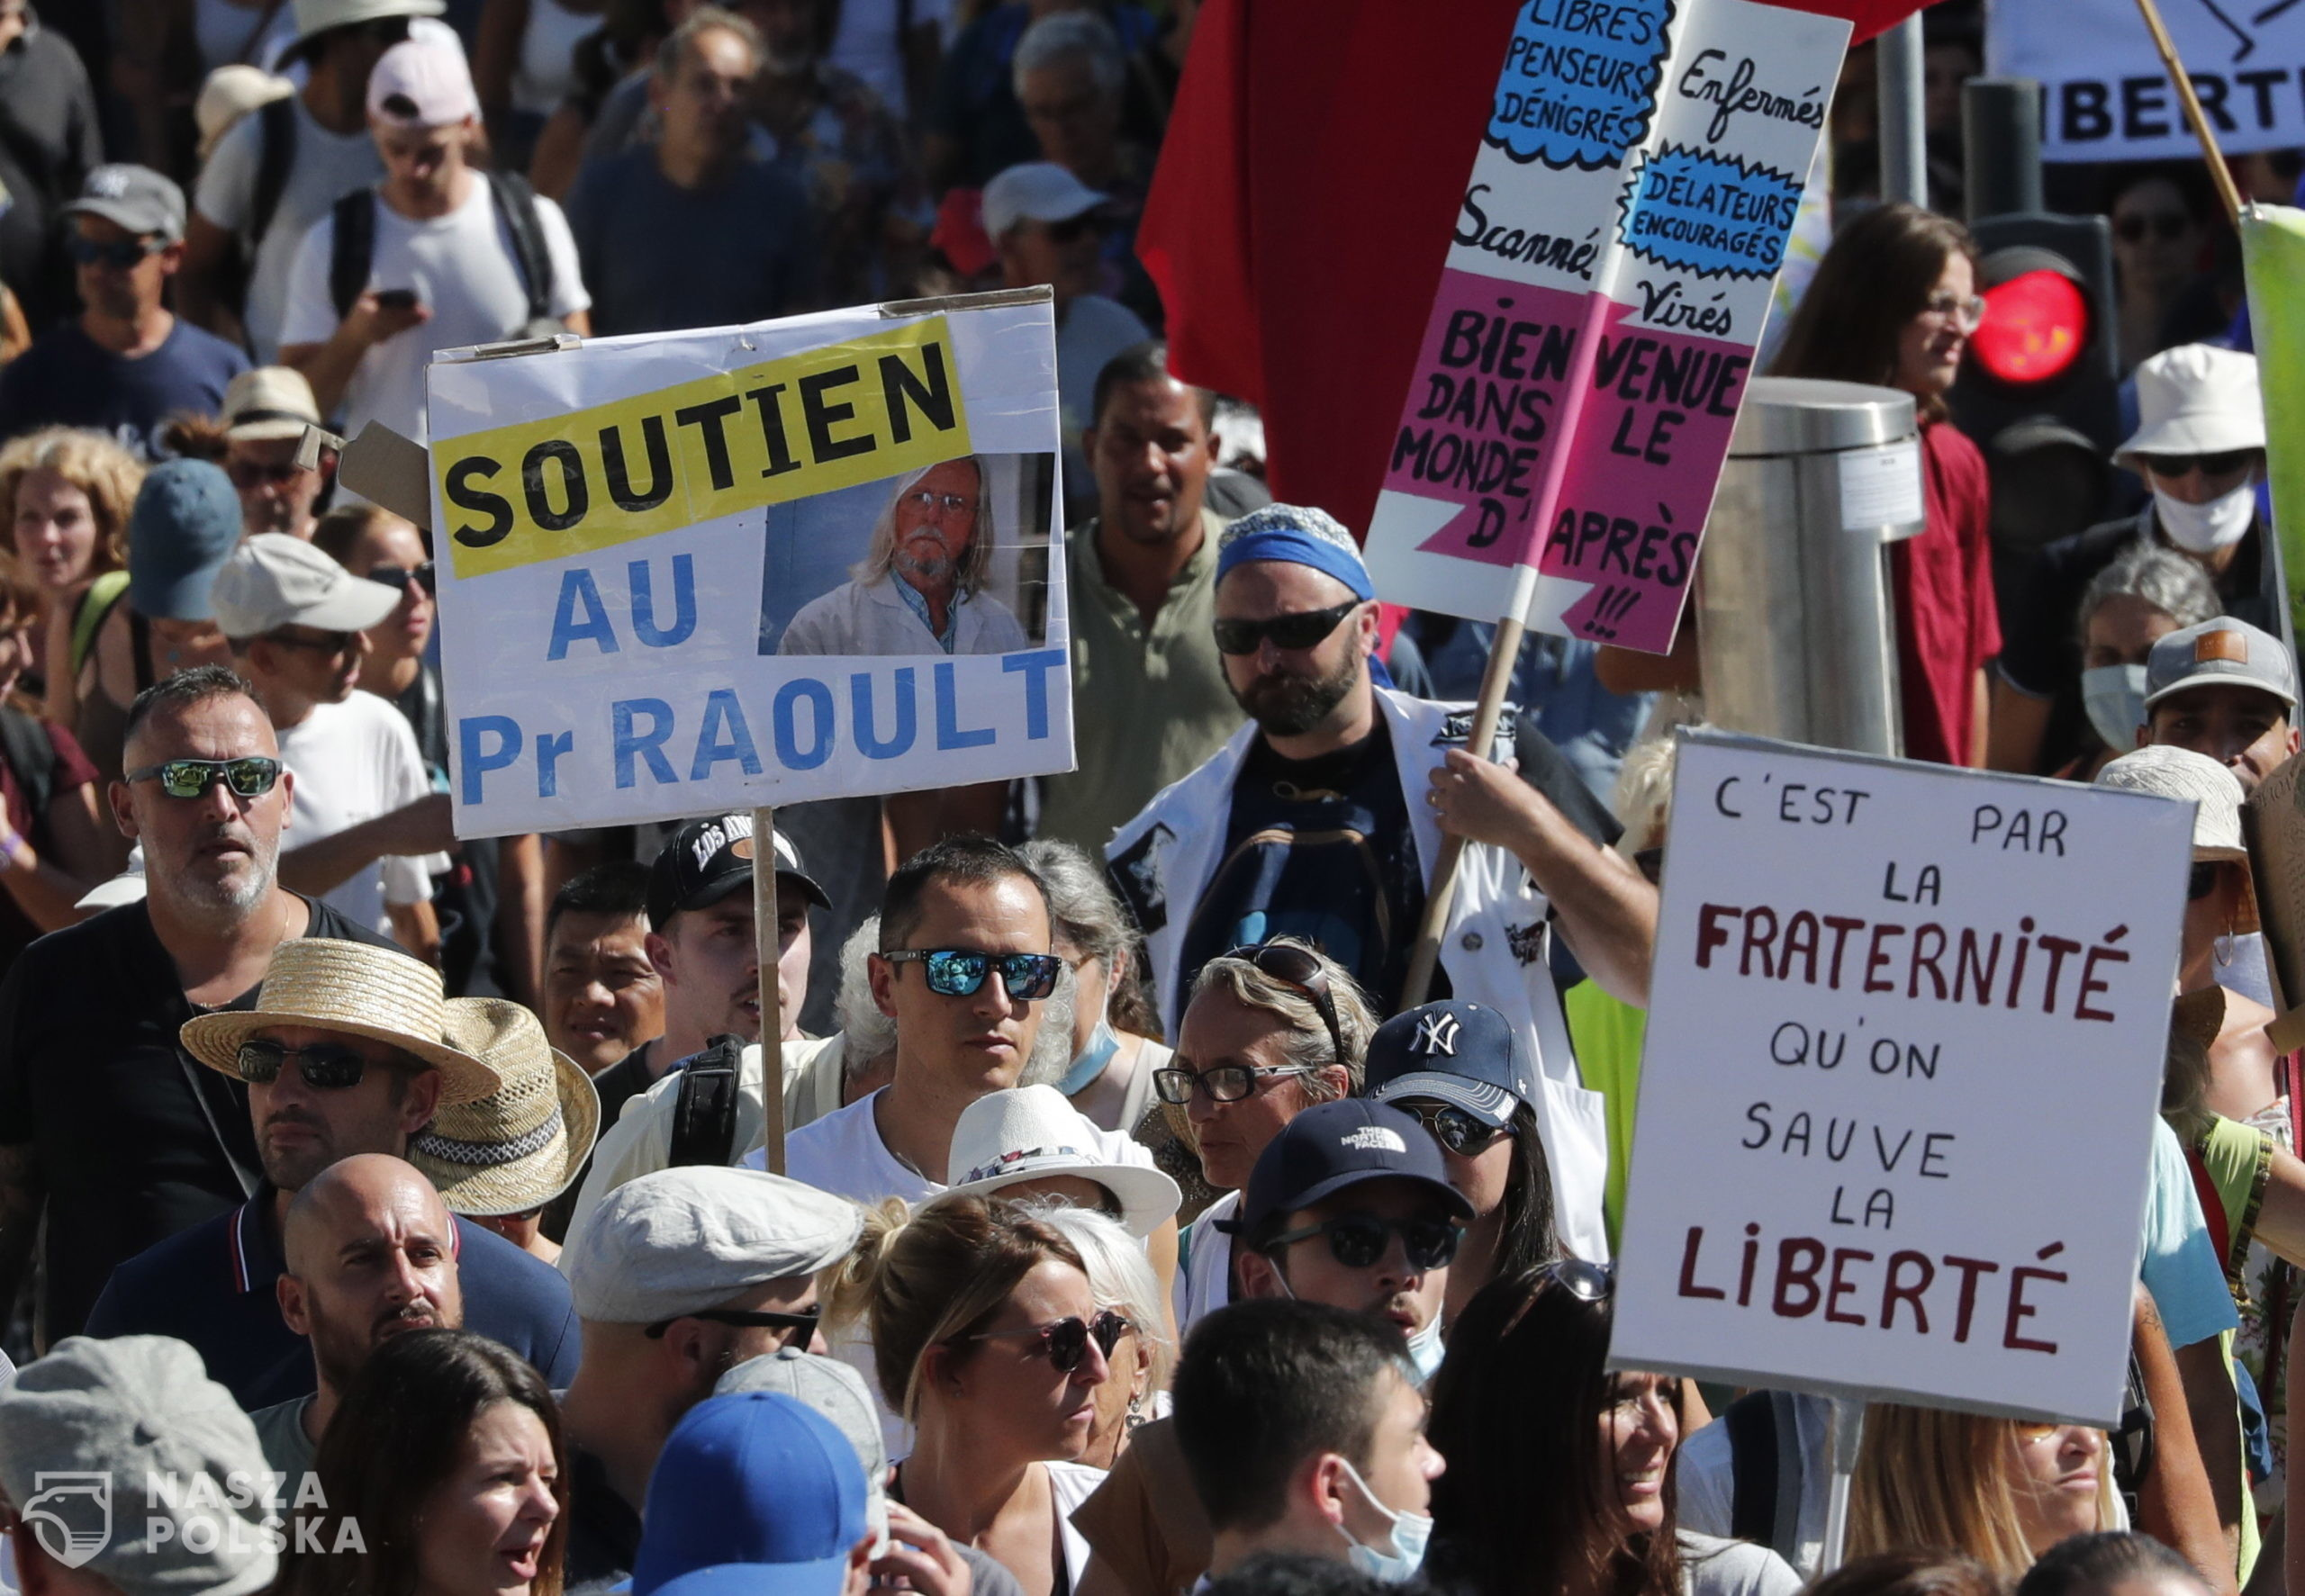 epa09434176 Protesters hold a poster reading 'Support professor Raoult' during a demonstration against the COVID-19 sanitary pass, which grants vaccinated individuals greater ease of access to venues, in Montpellier, France, 28 August 2021. For the seventh consecutive week, thousands of French demonstrators have taken to the streets in several cities across the country to protest against measures to curb the spread of coronavirus.  EPA/GUILLAUME HORCAJUELO  Dostawca: PAP/EPA.